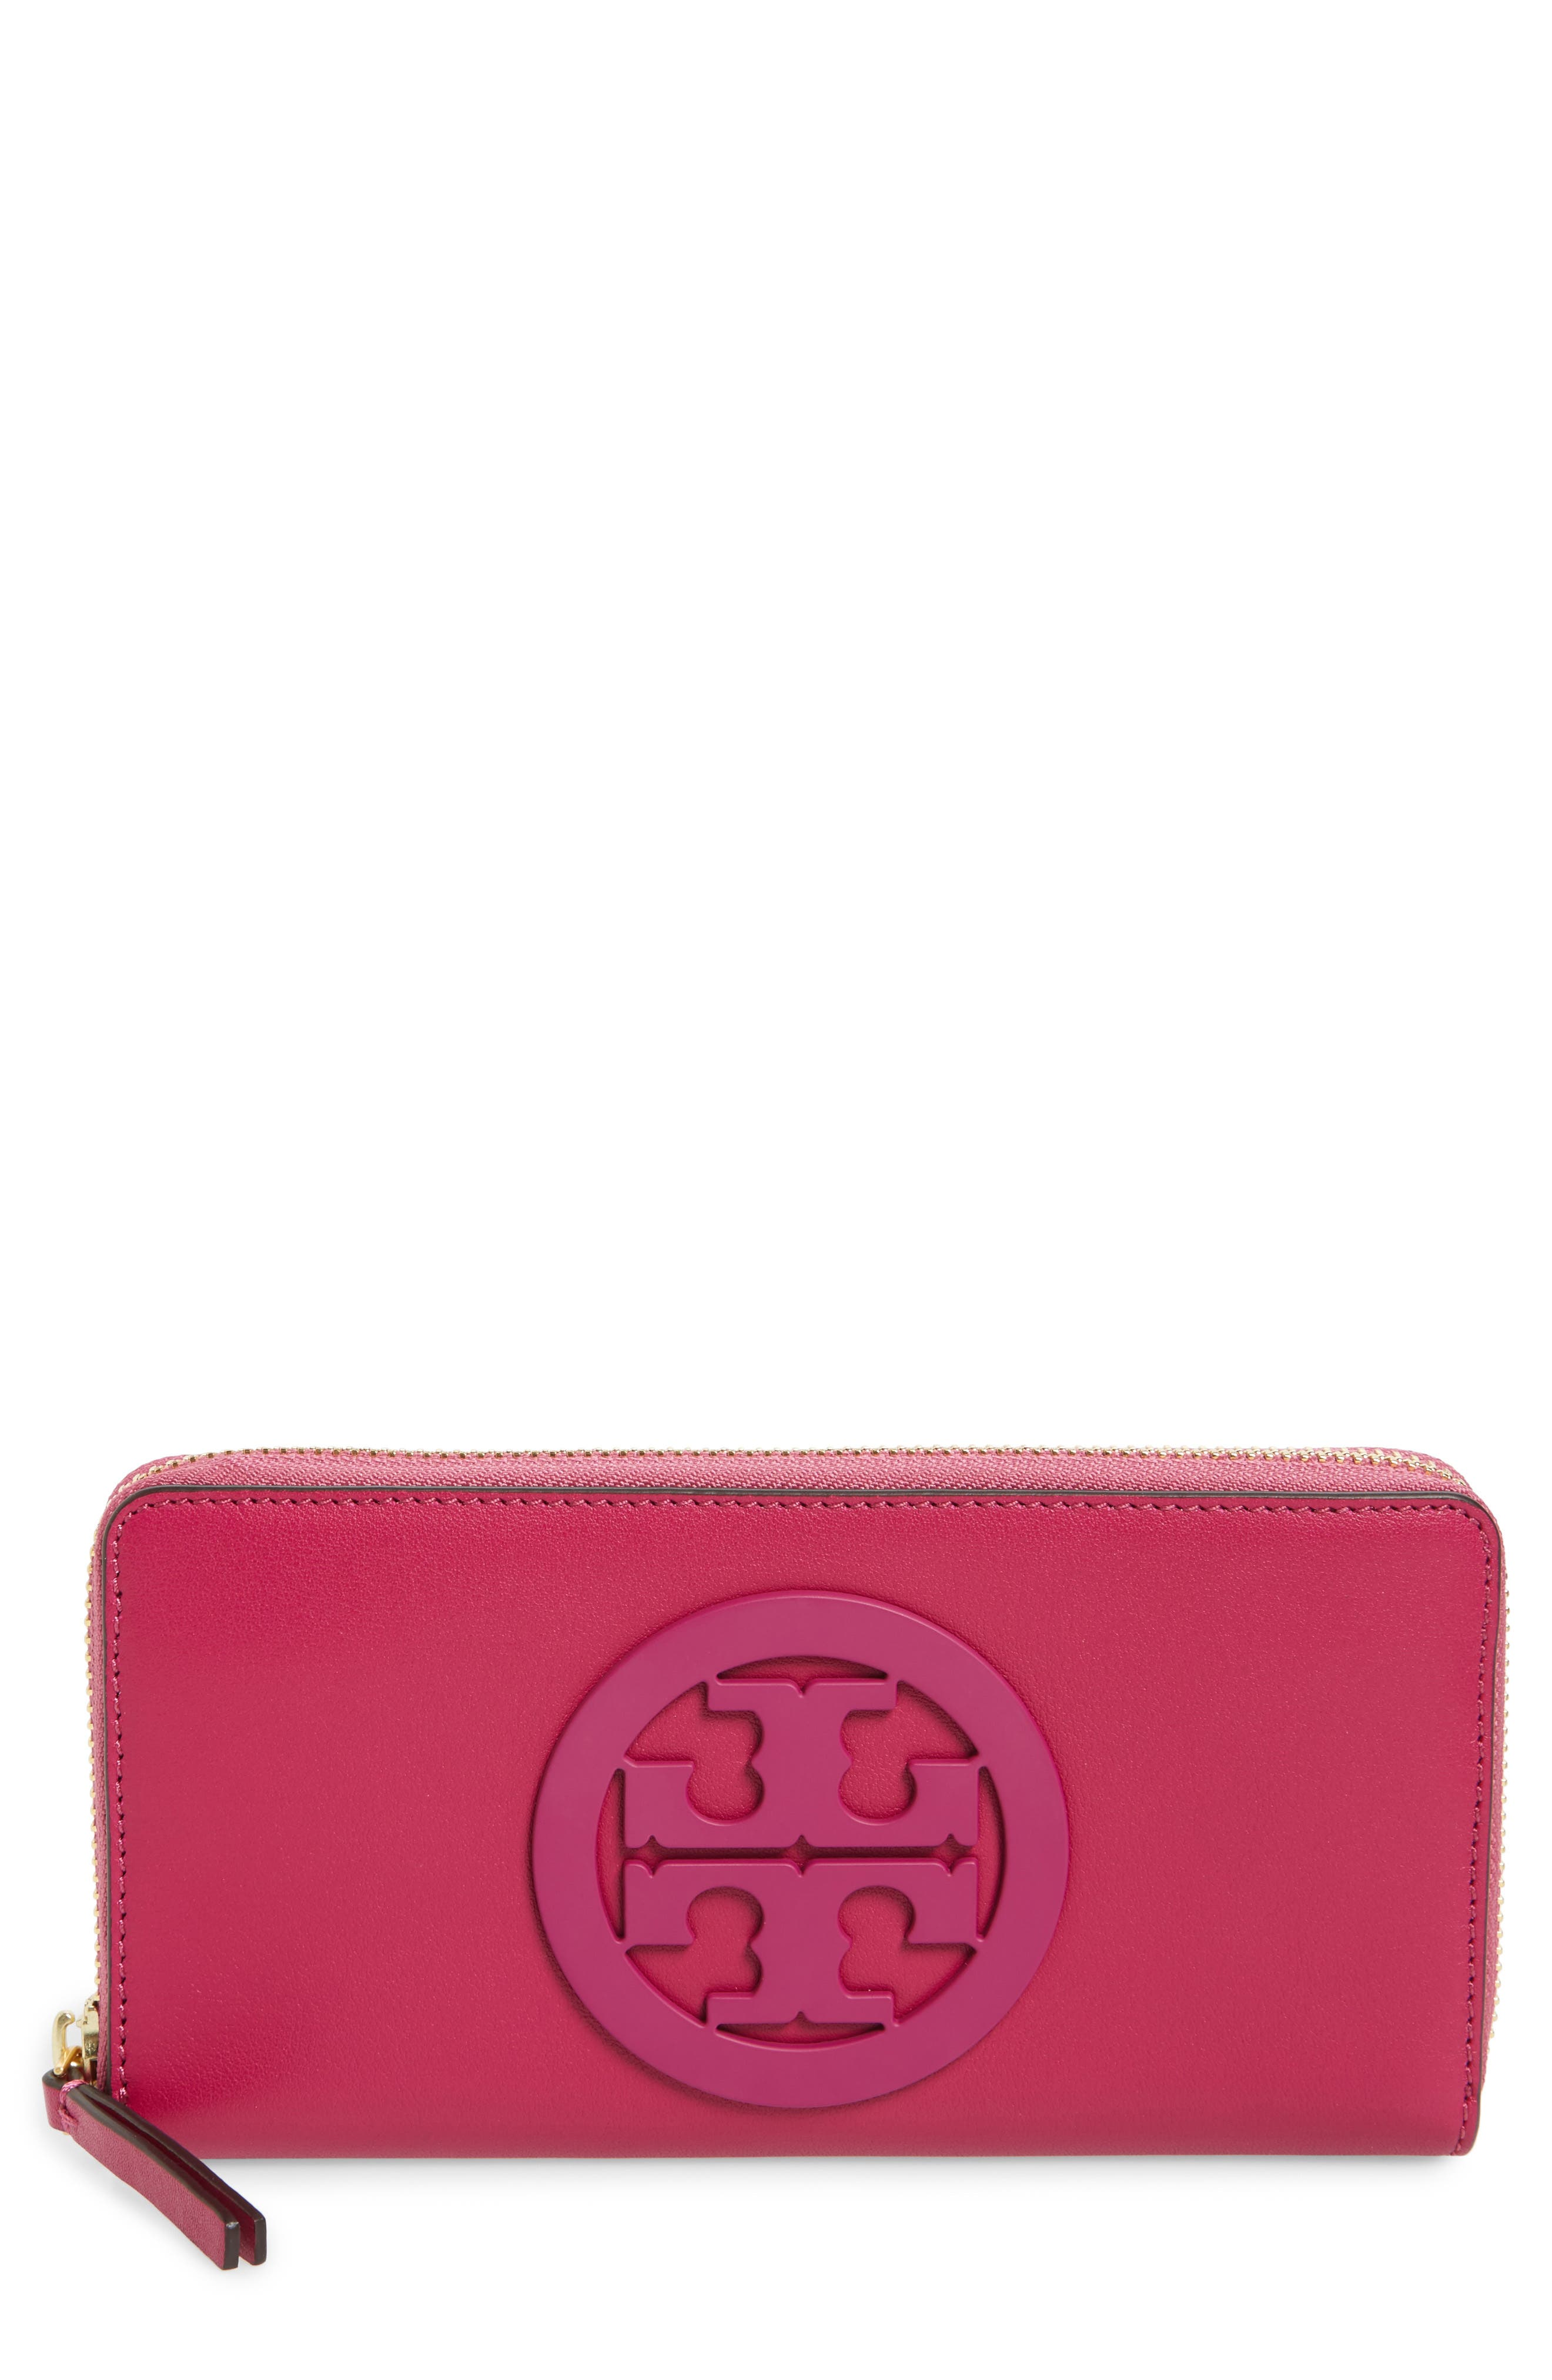 Charlie Leather Continental Wallet,                         Main,                         color, Party Fuchsia